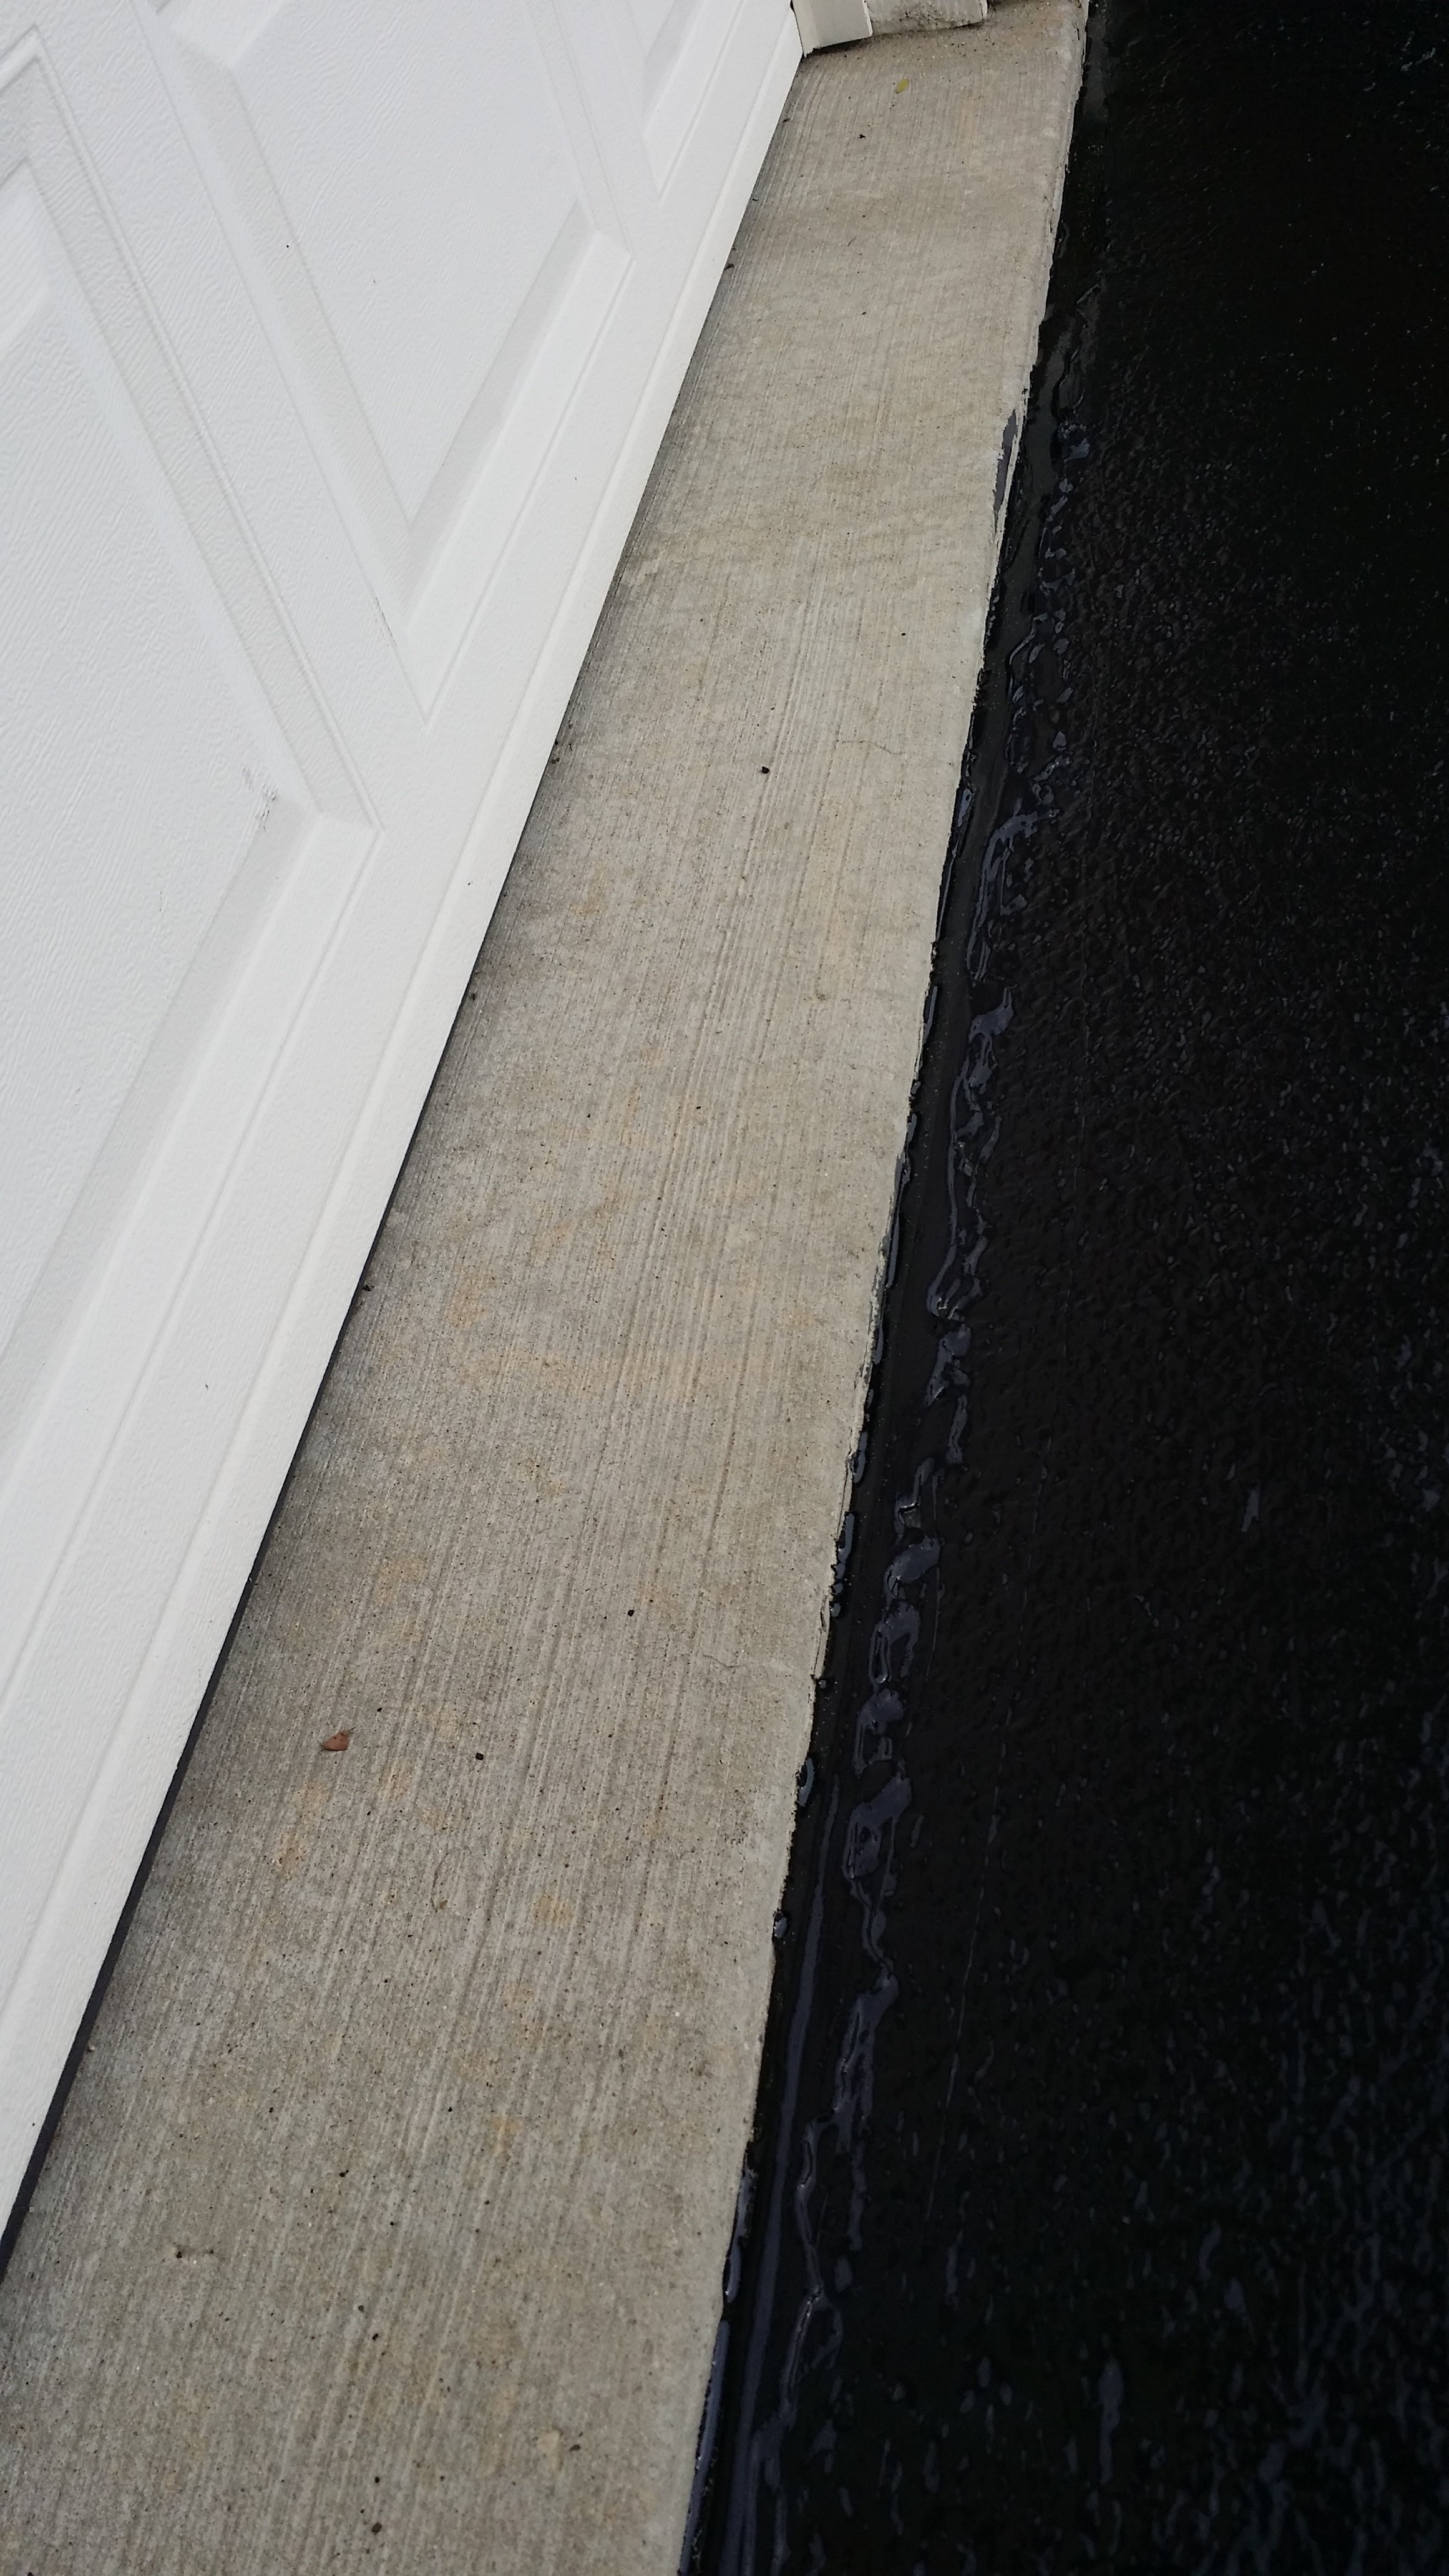 filling small gaps in hardwood floors of fill gap between driveway and concrete floor silva brothers inside we solve the problem filling the gap with a 450 f hot rubber material insulating the